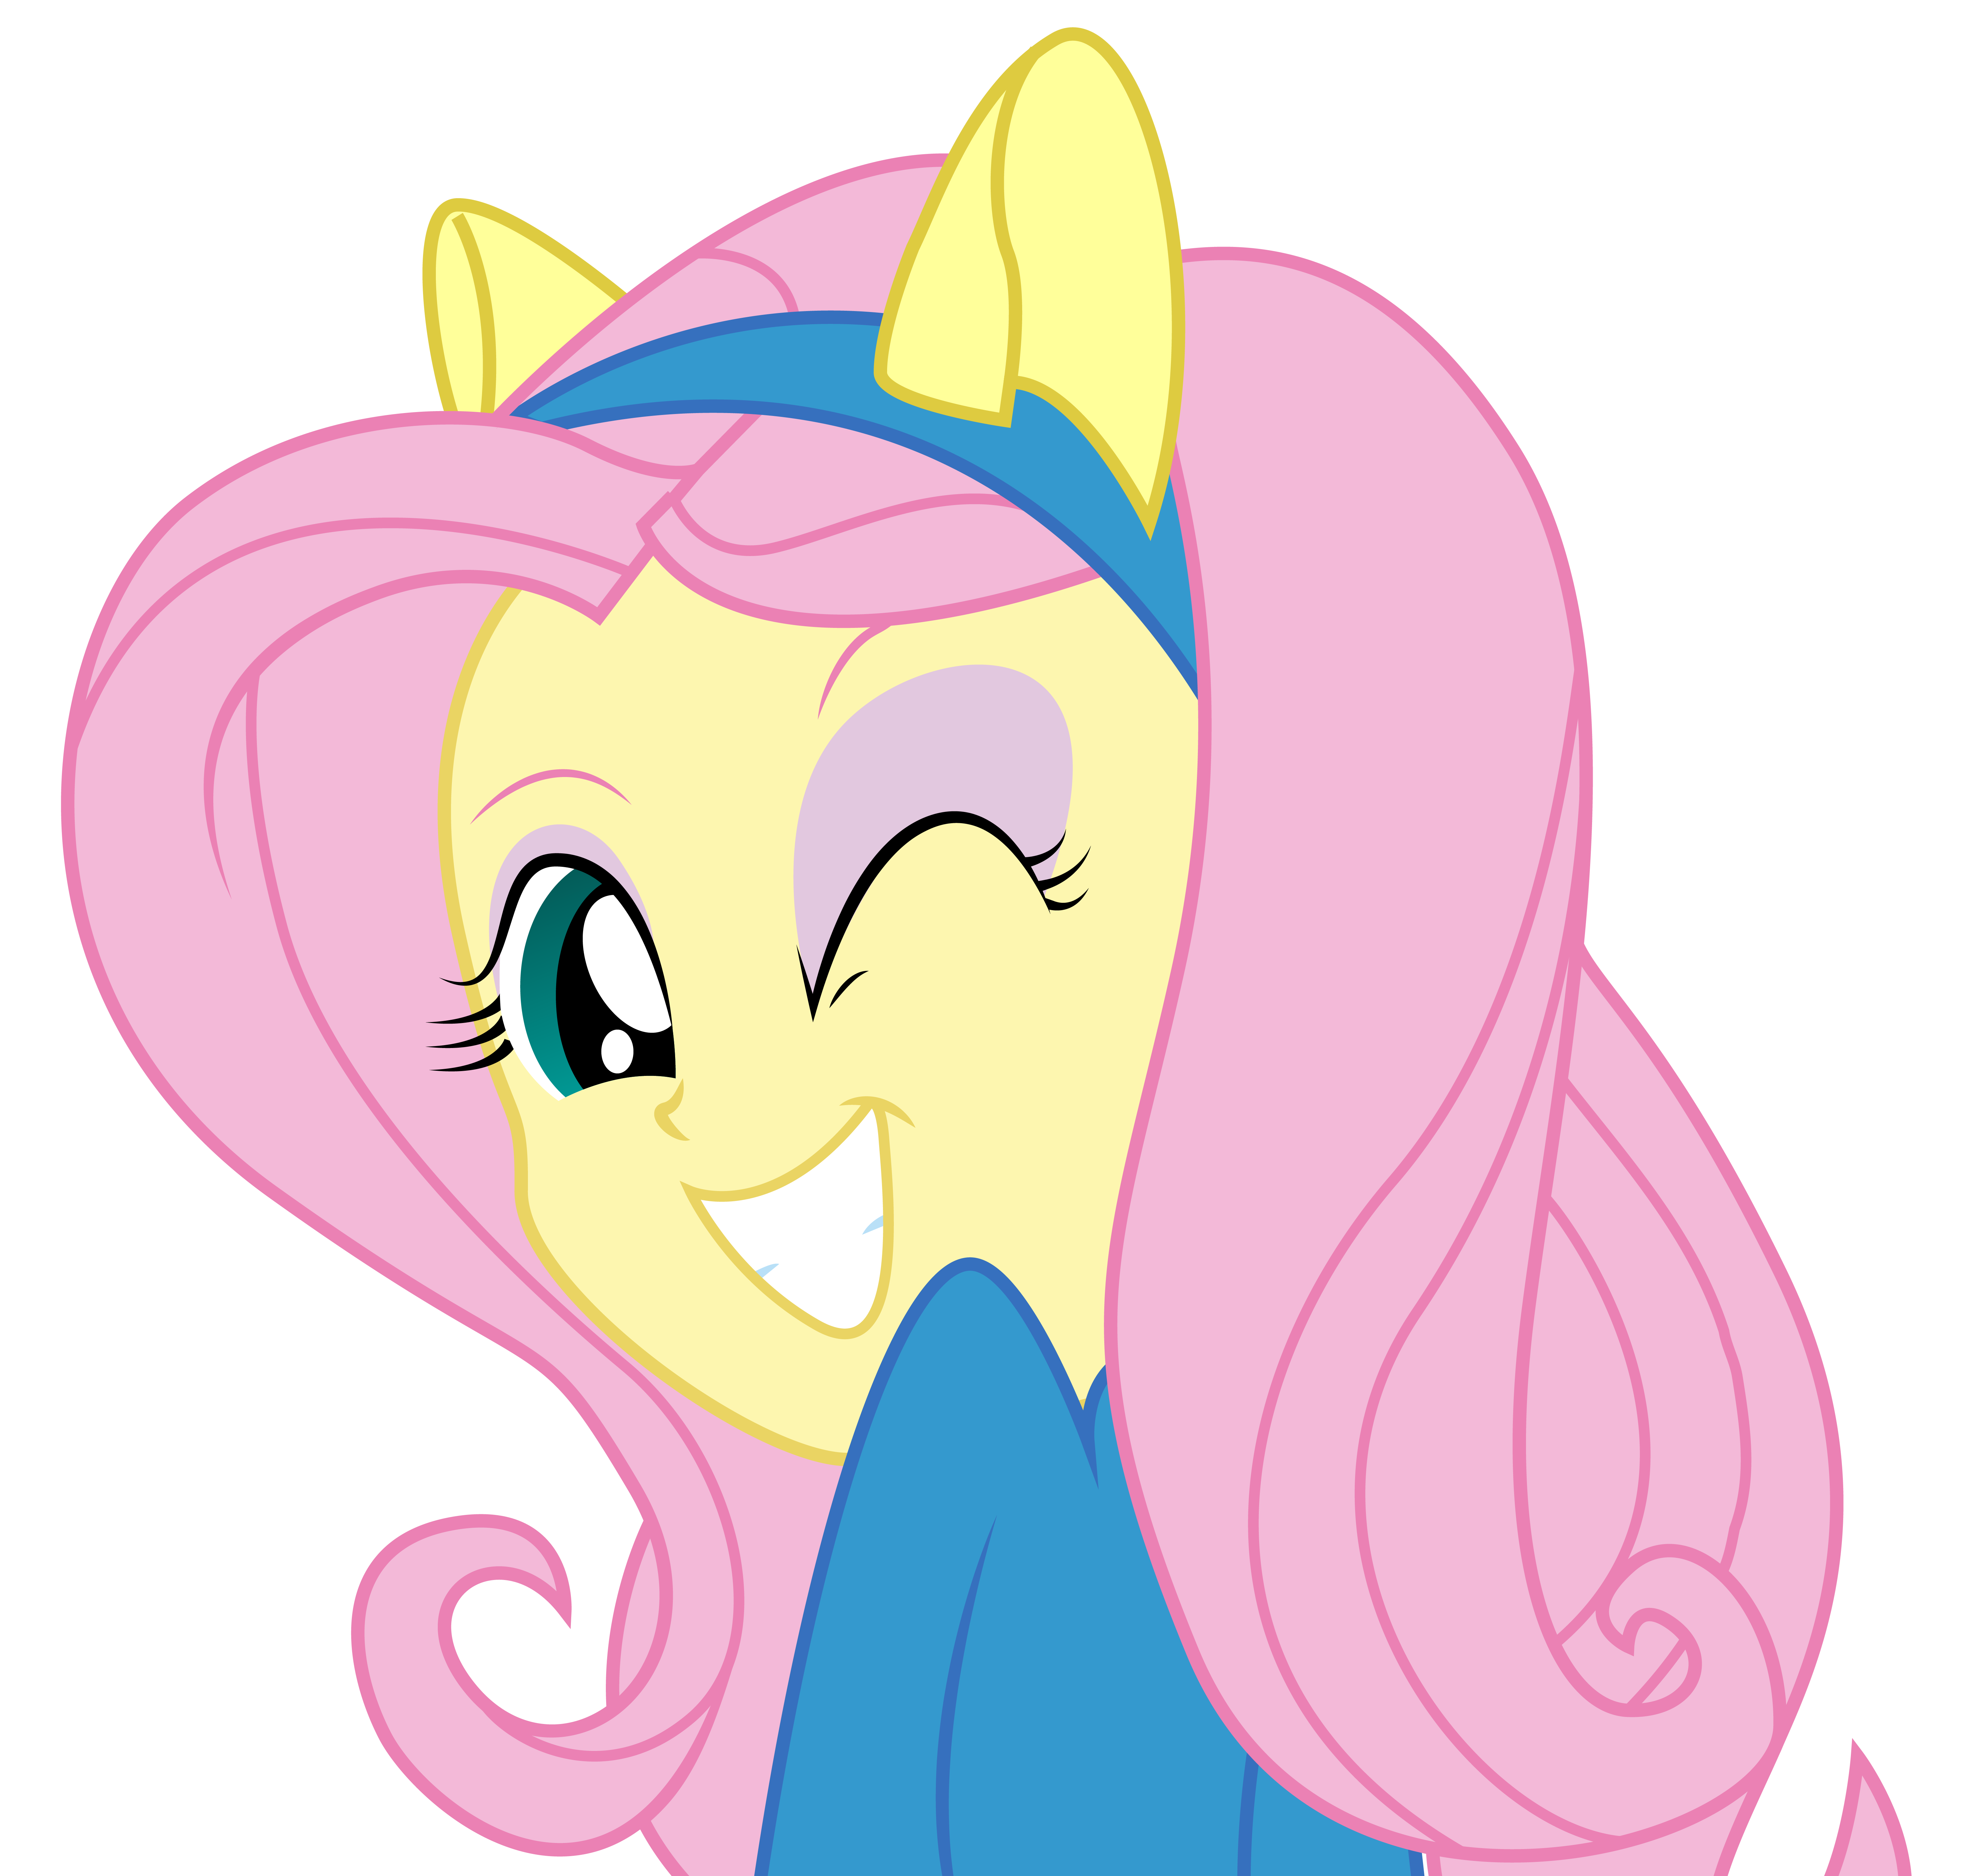 image Equestria girls fluttershy fucked ribiruby animation clop